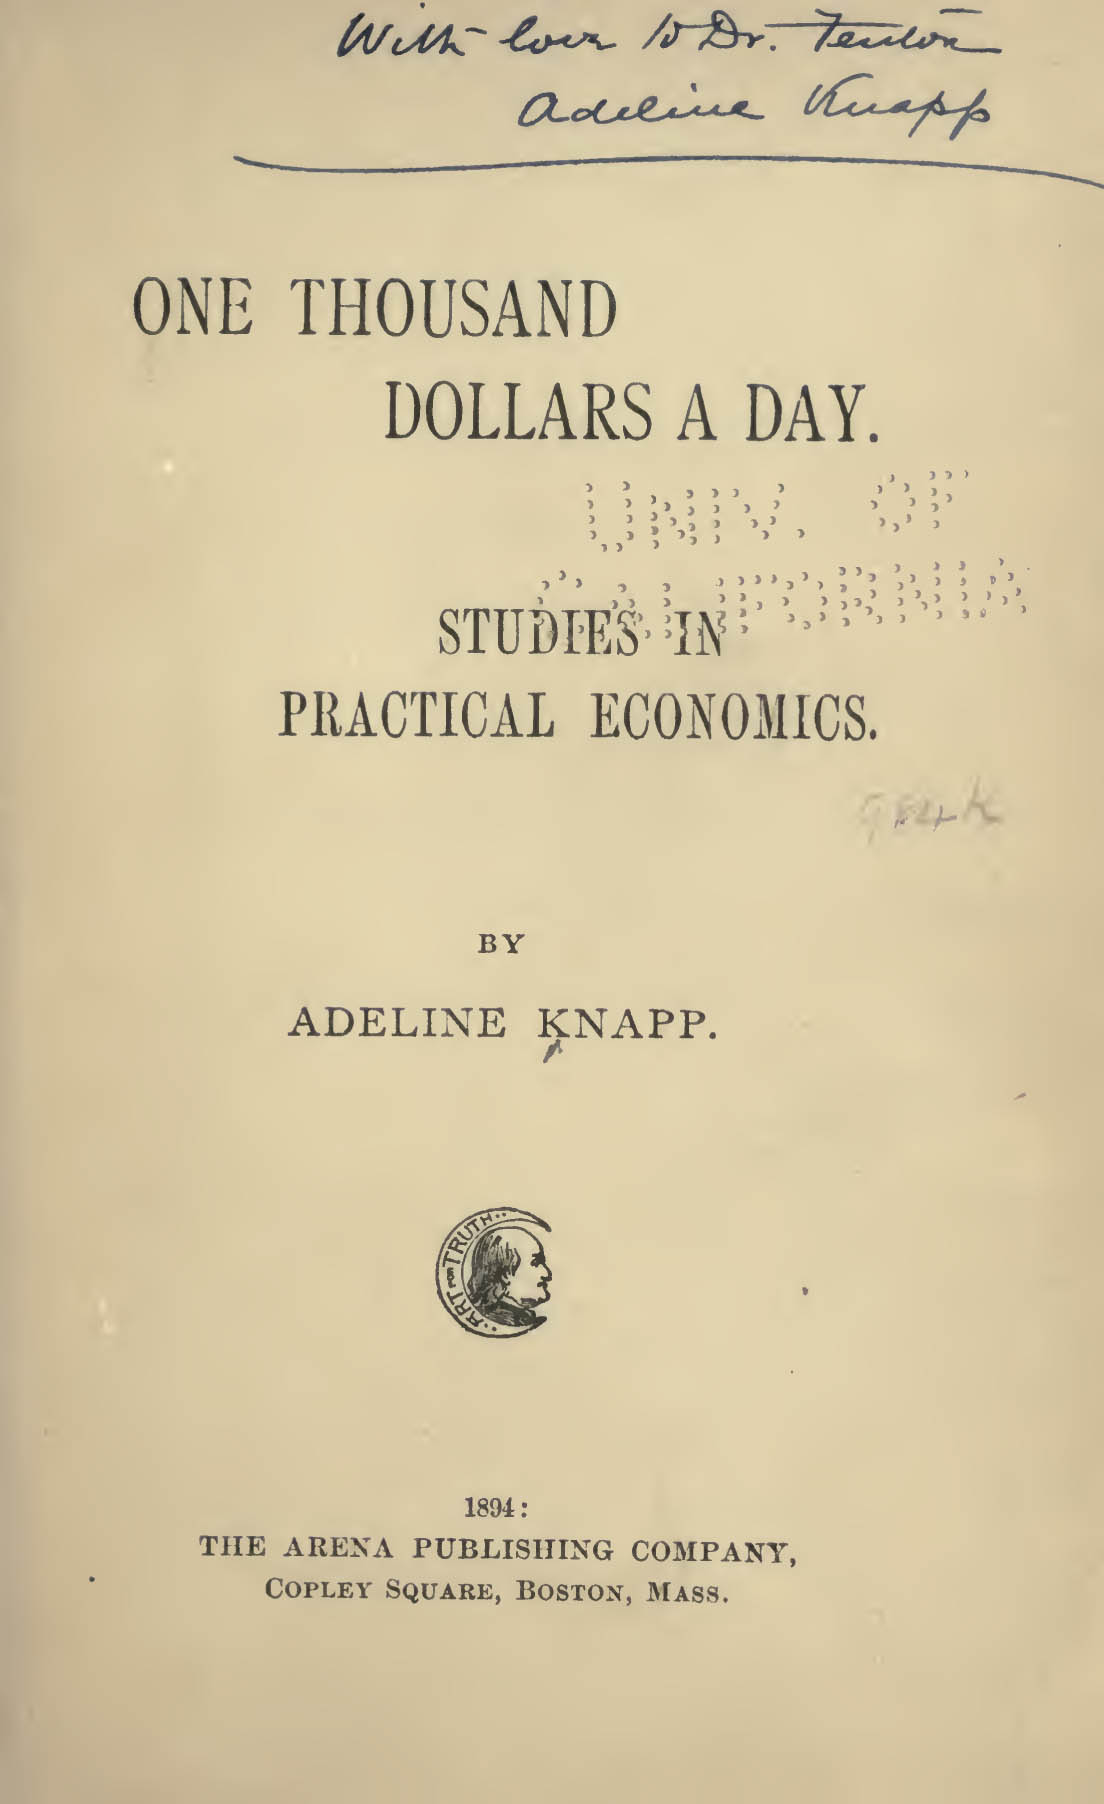 One thousand dollars a day. Studies in practical economics